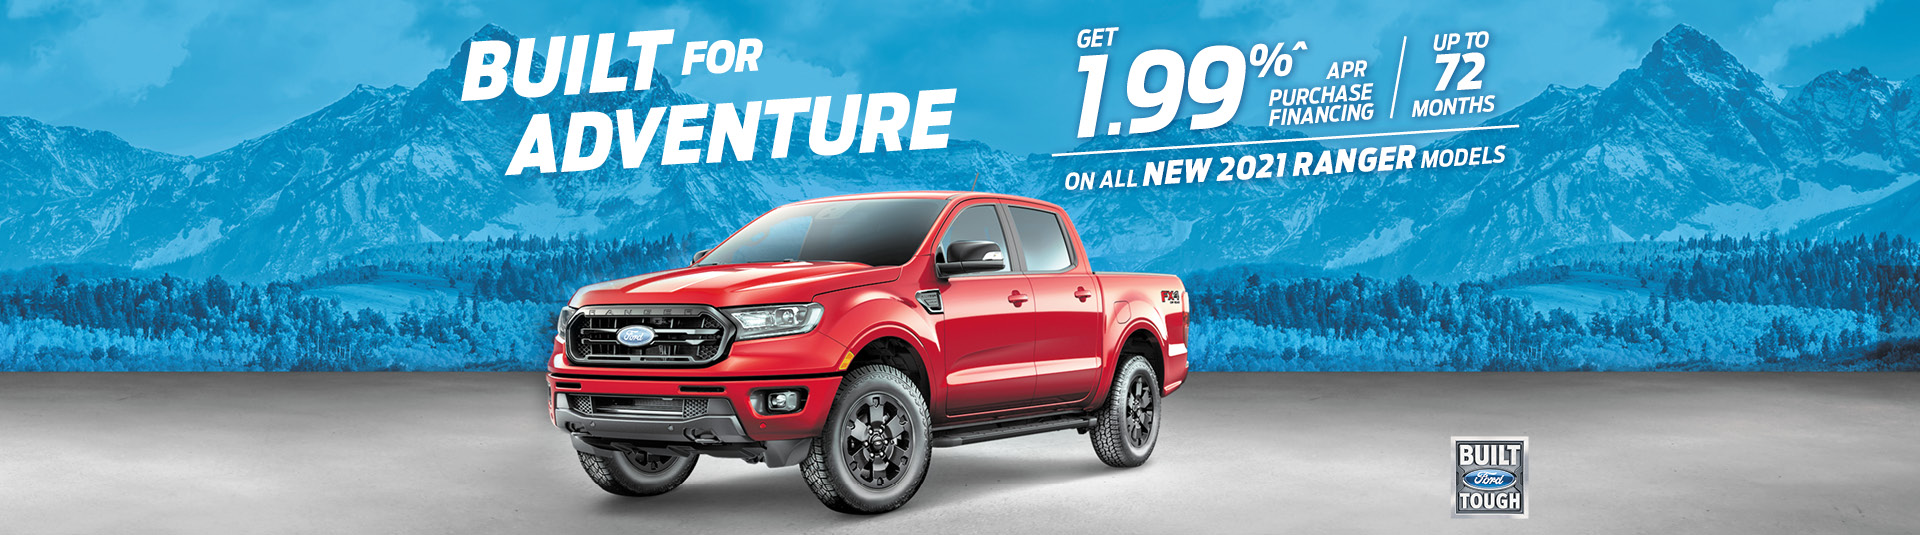 1.99% APR up to 72 months on all new 2021 Ranger Models